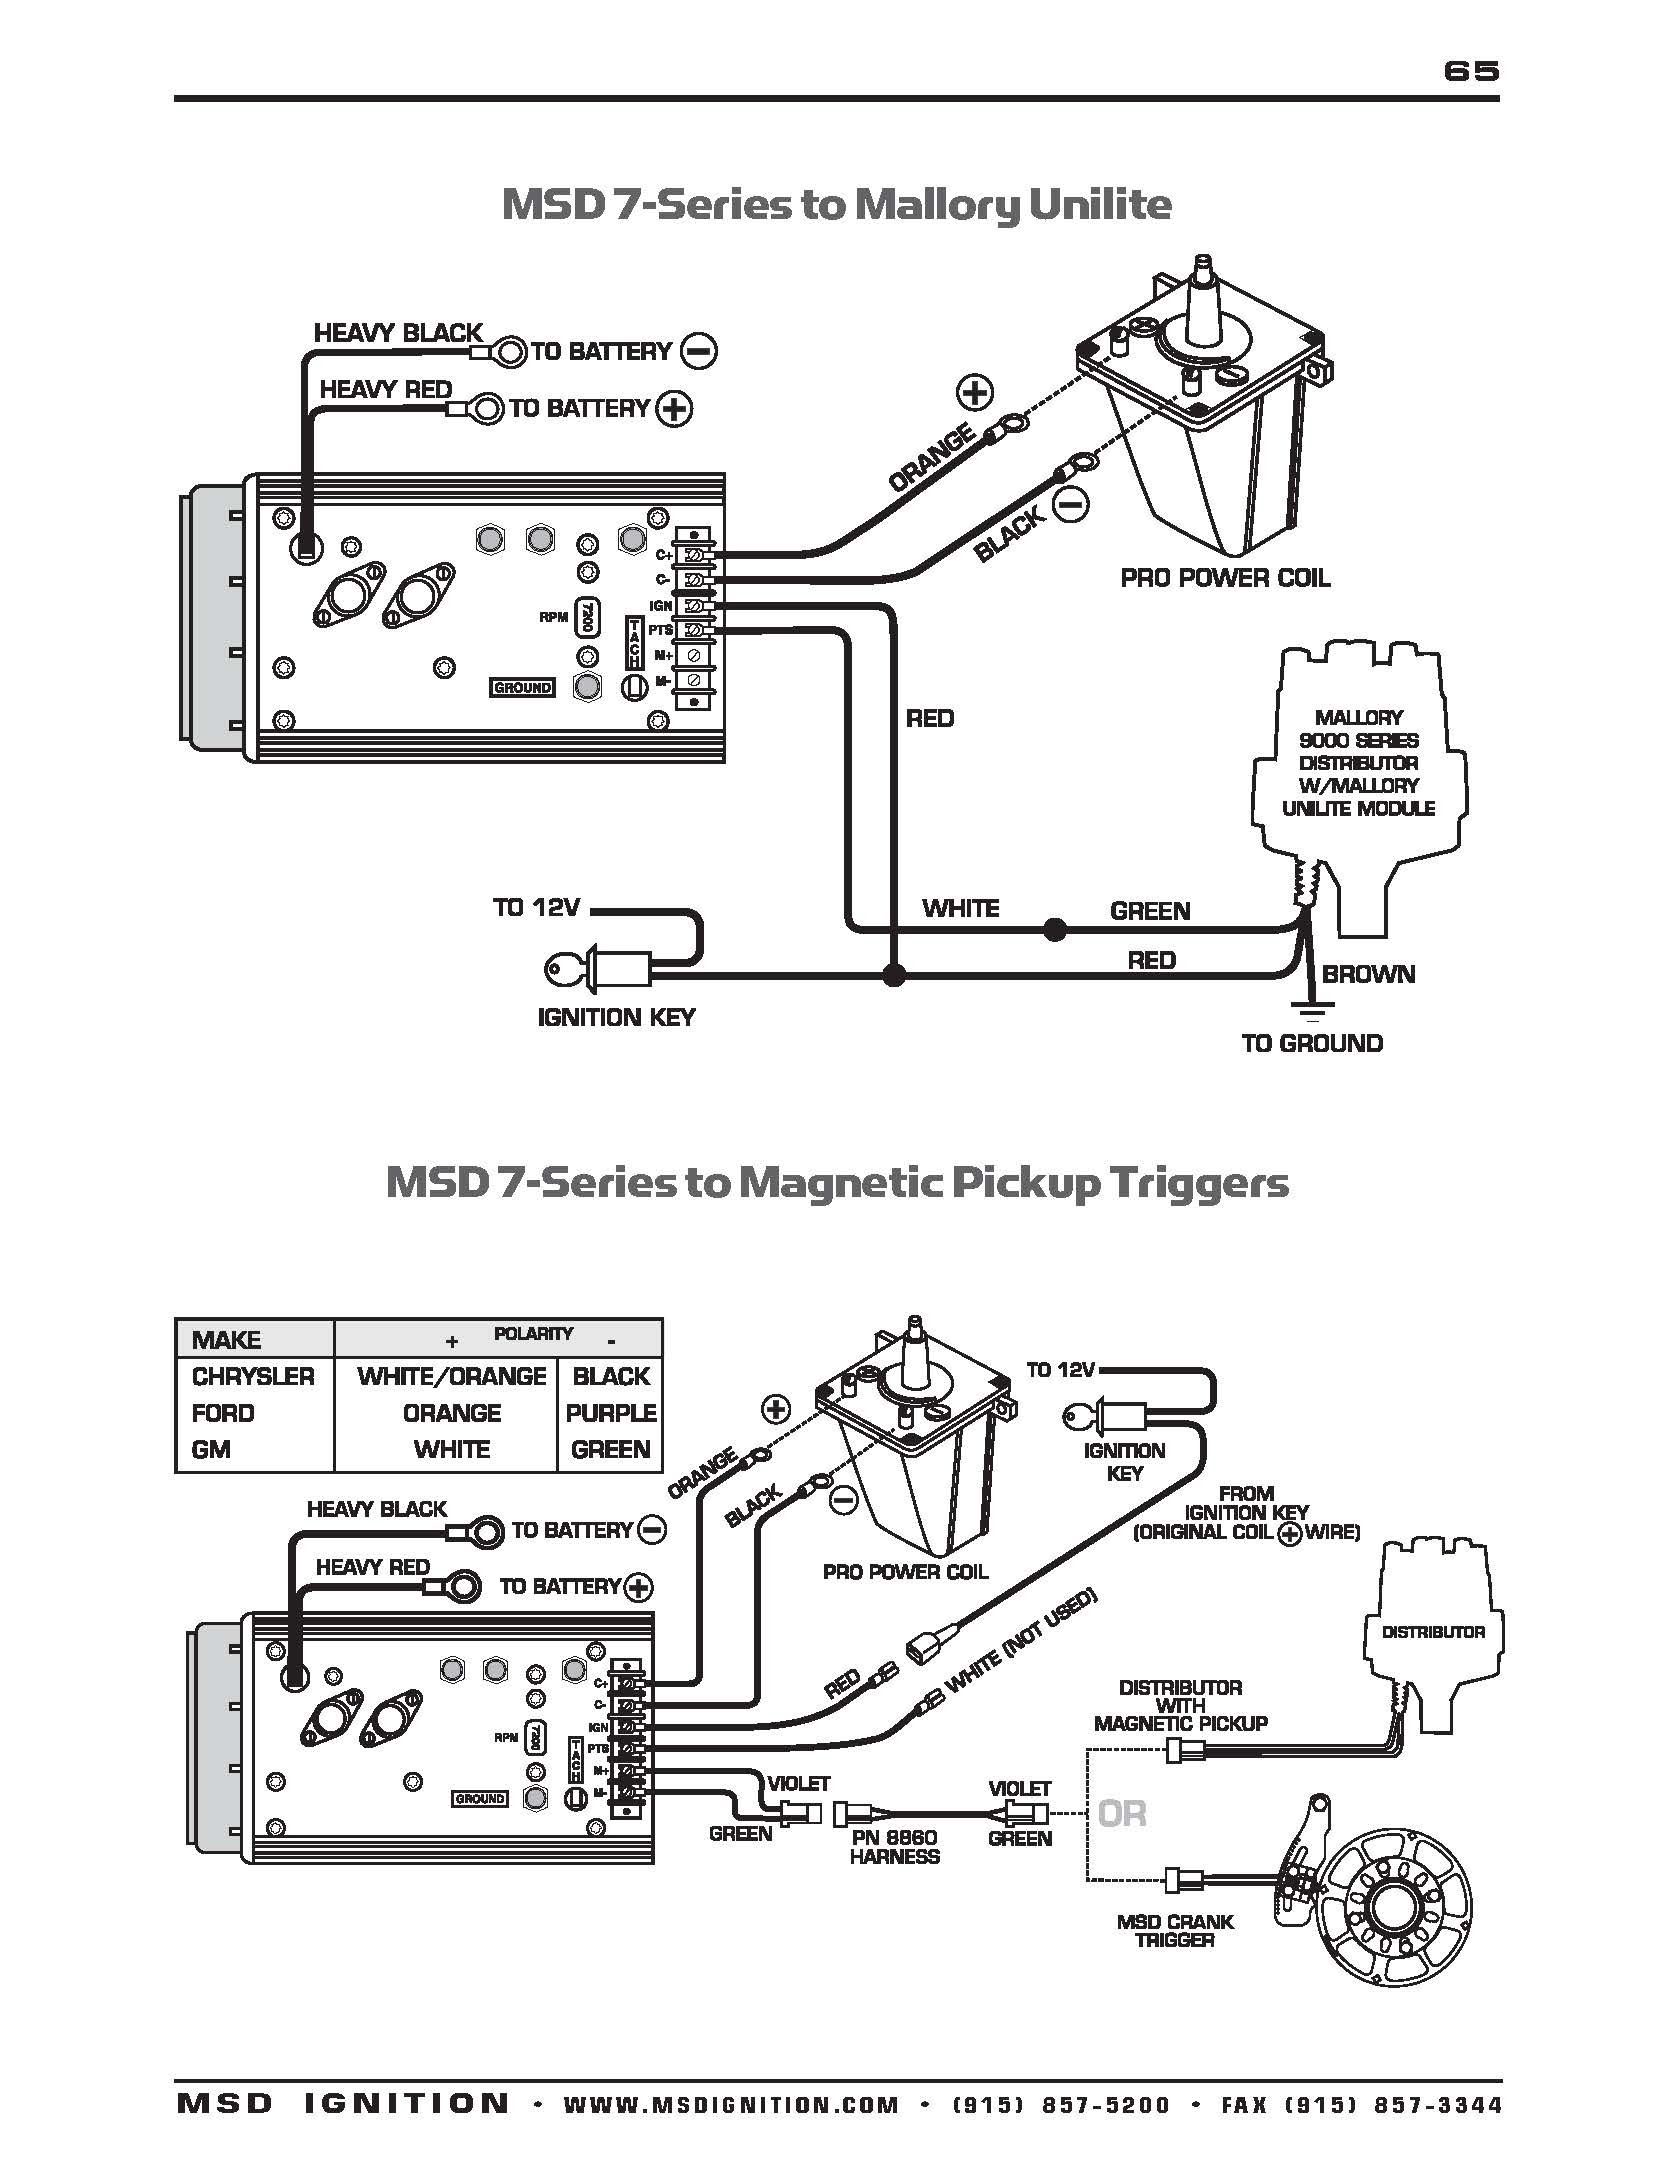 Hei Distributor Wiring Diagram Wdtn Pn9615 Page 064 In Msd Distributor Wiring Diagram Wiring Diagram Of Hei Distributor Wiring Diagram Msd Ignition Wiring Diagrams Throughout 6a Diagram to Distributor